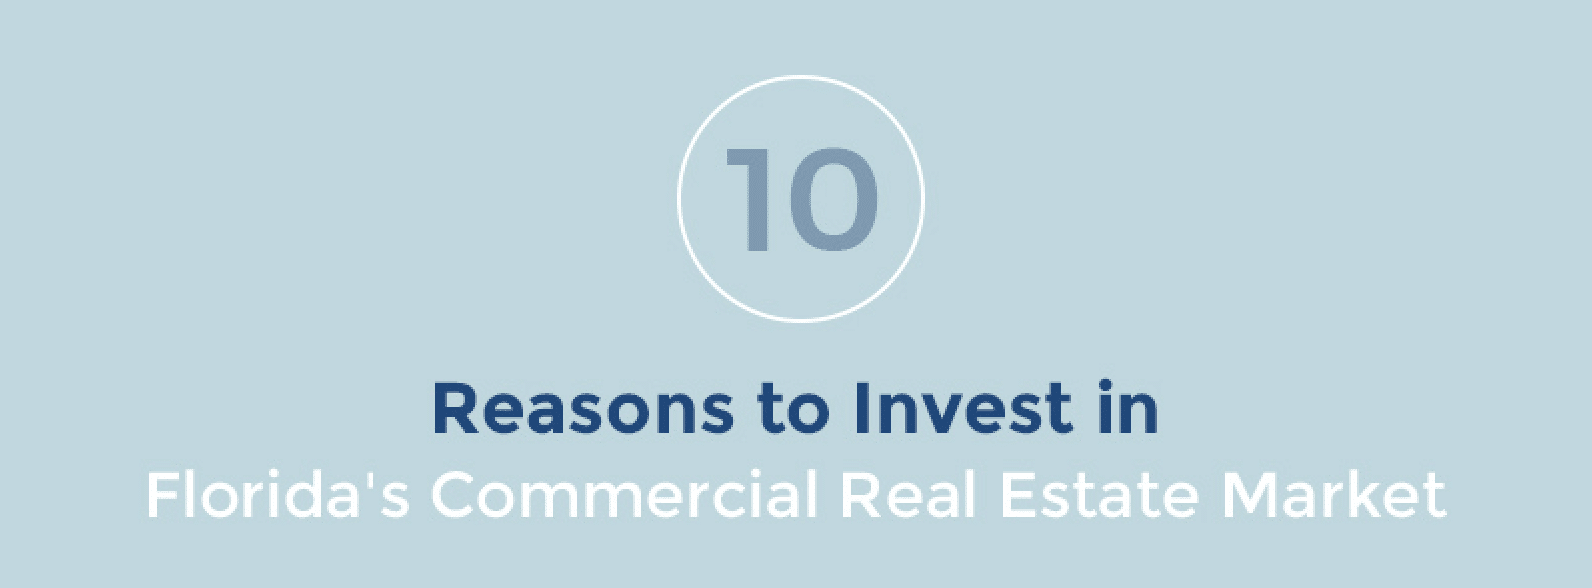 Reasons to Invest in Florida Commercial Real Estate